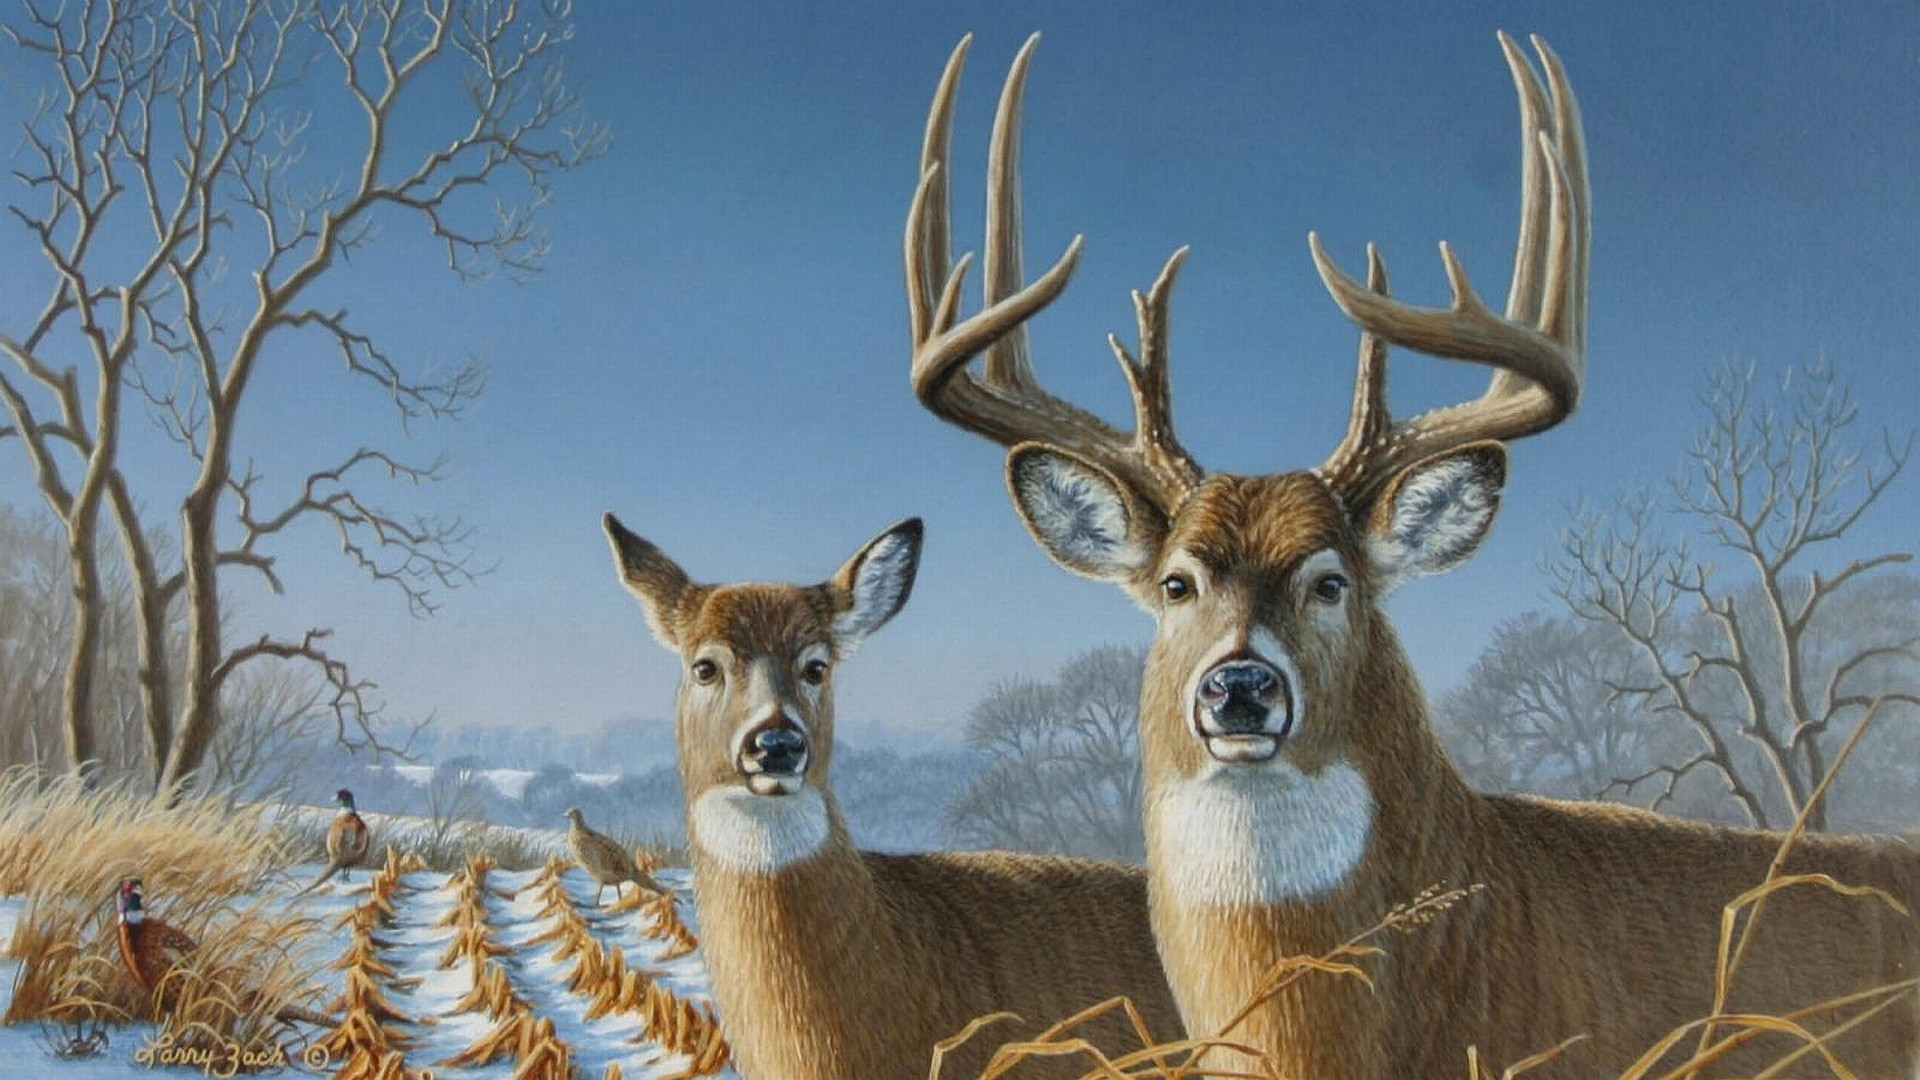 1920x1080 Whitetail Deer Wallpaper Whitetail Deer Backgrounds for PC HD